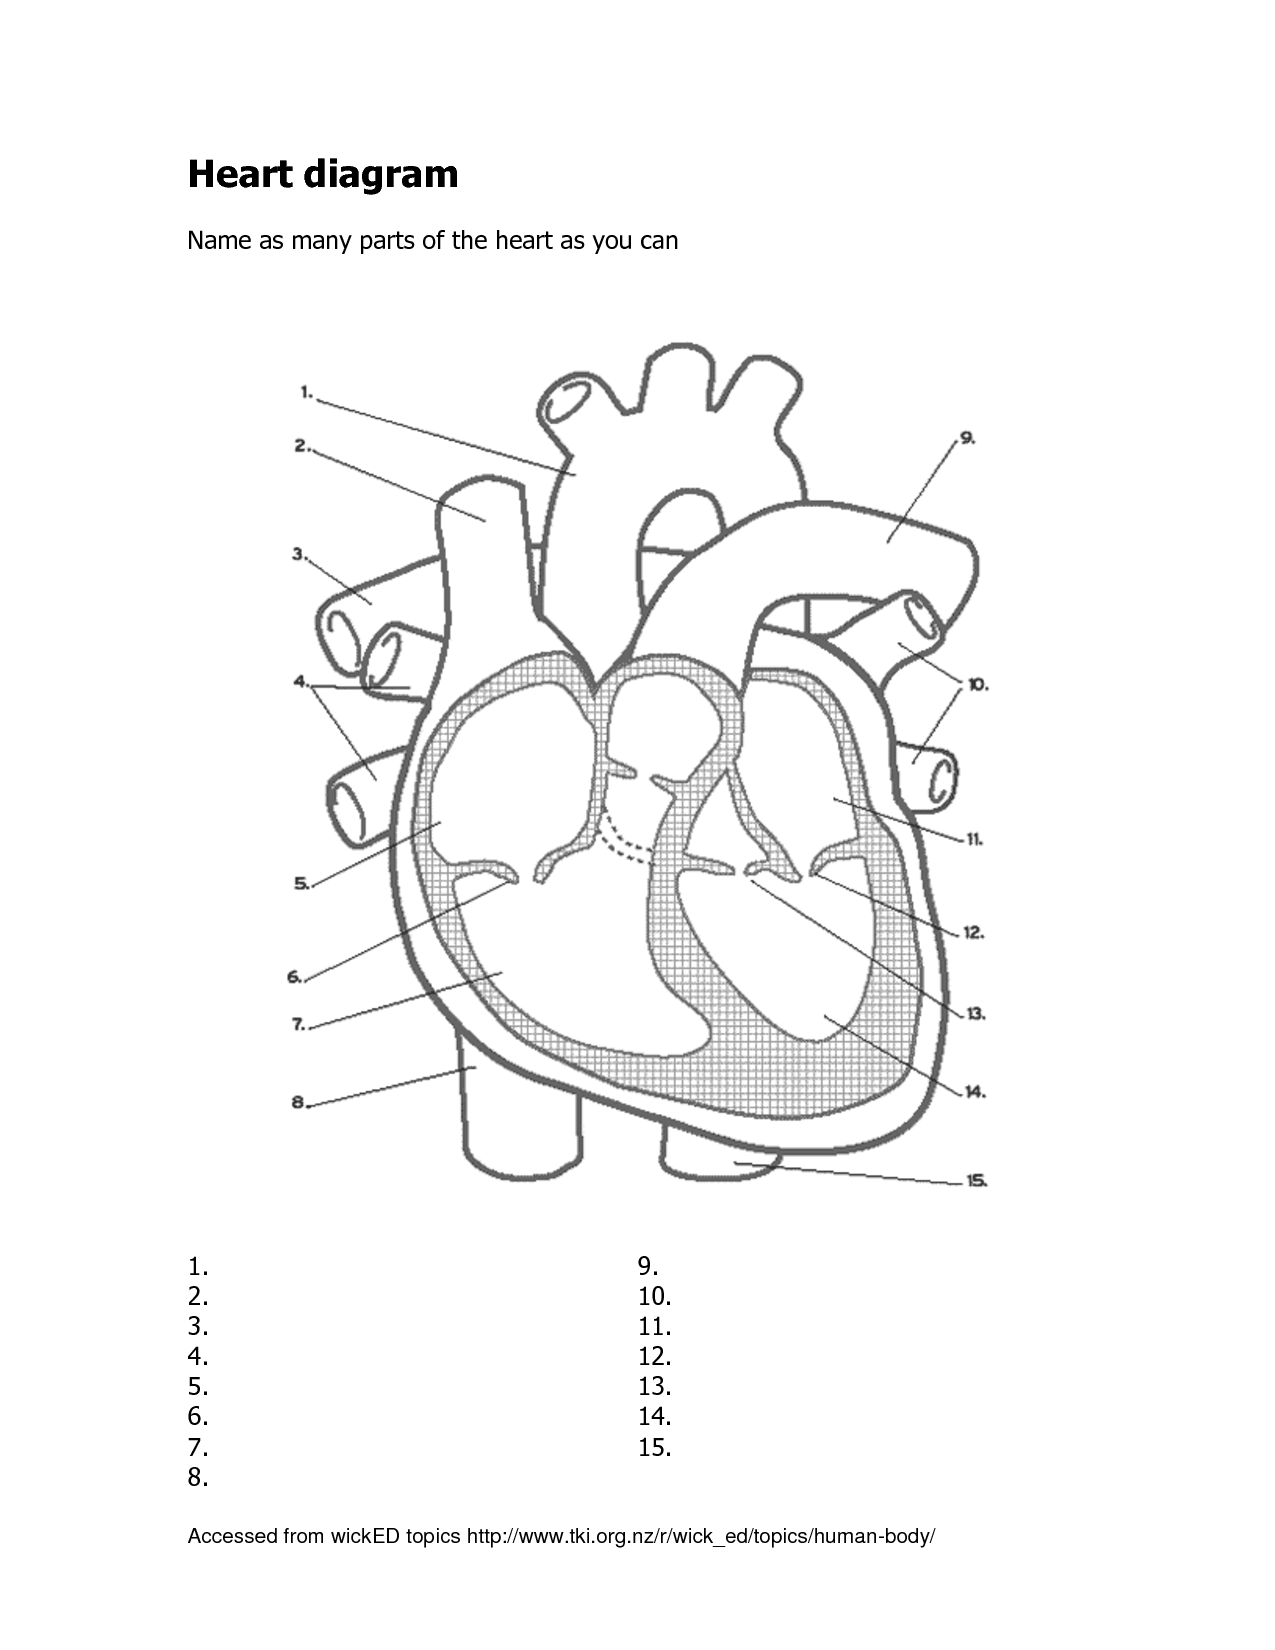 Heart Diagram Practice